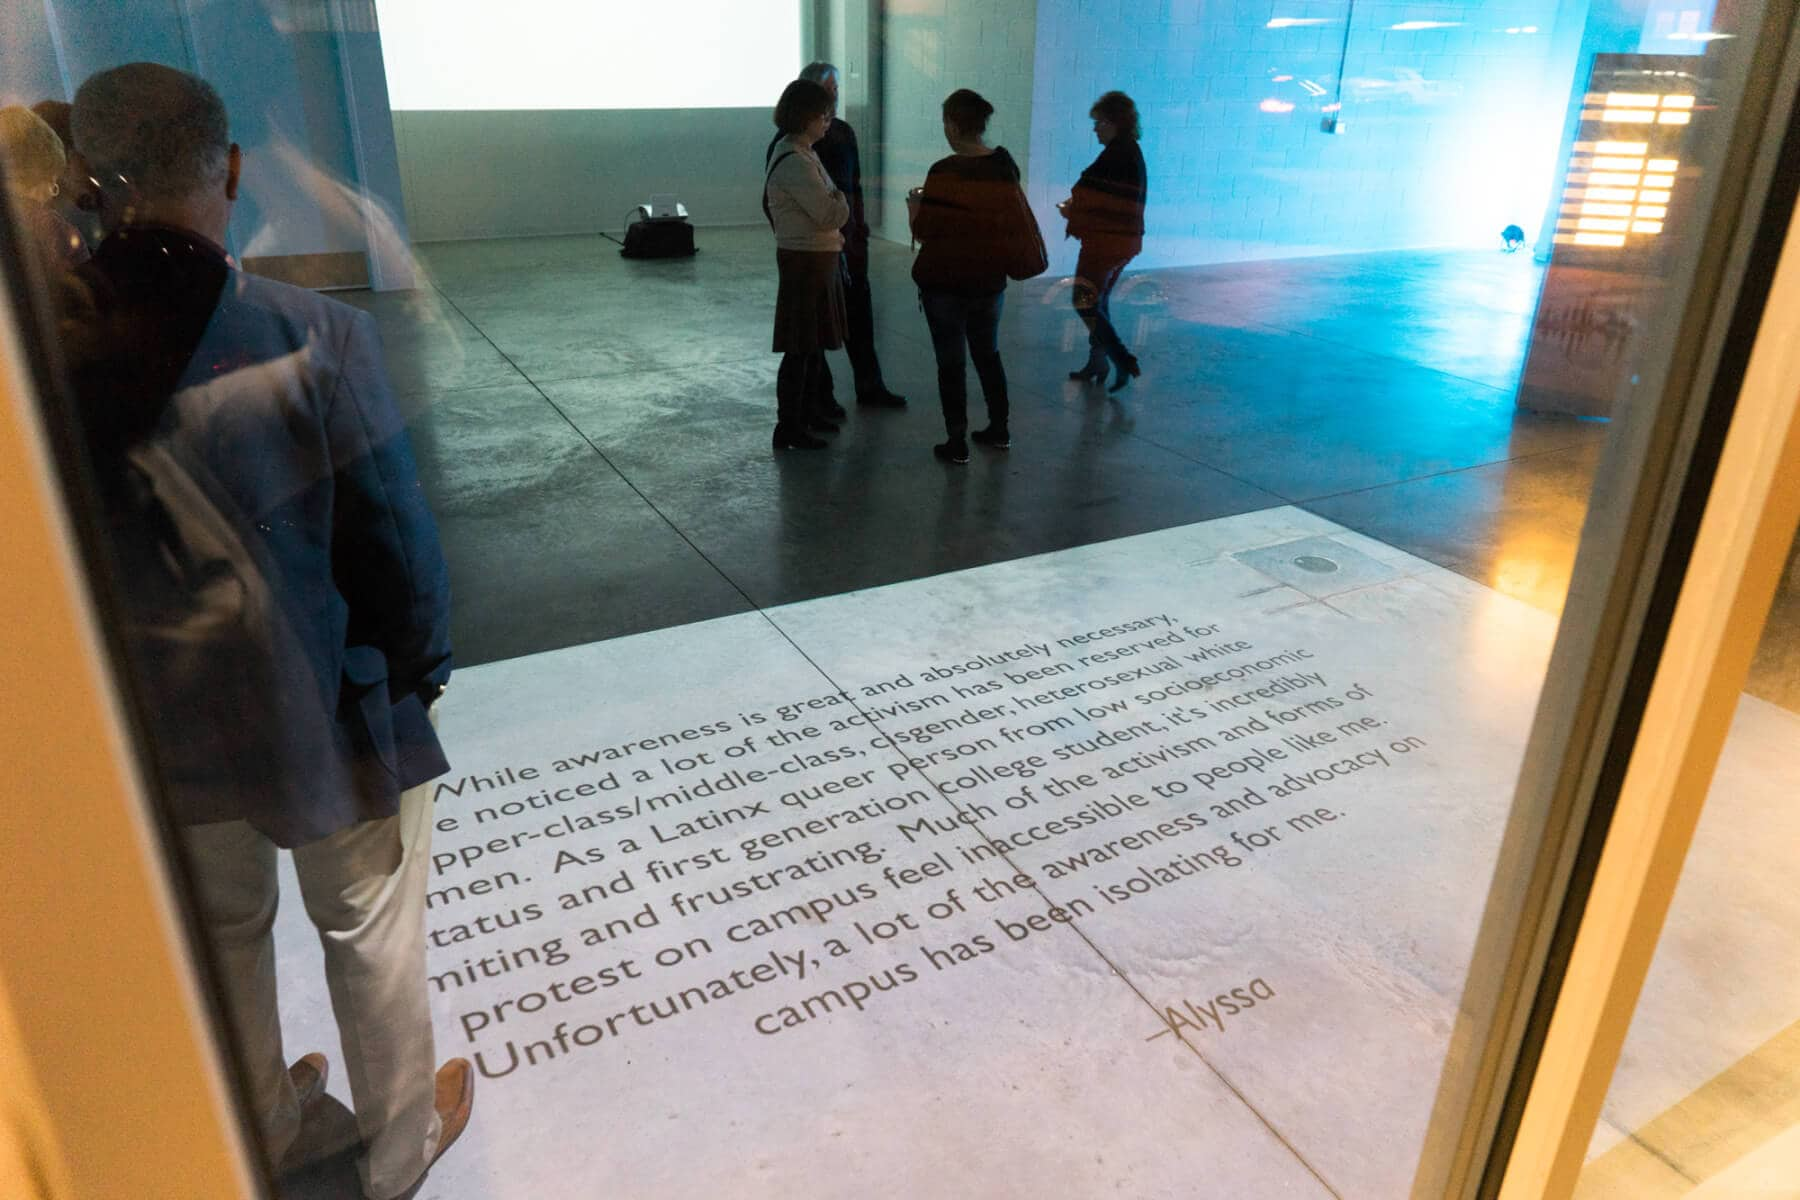 A survivor statement that is projected on the floor of the Broad Art Lab in downtown East Lansing